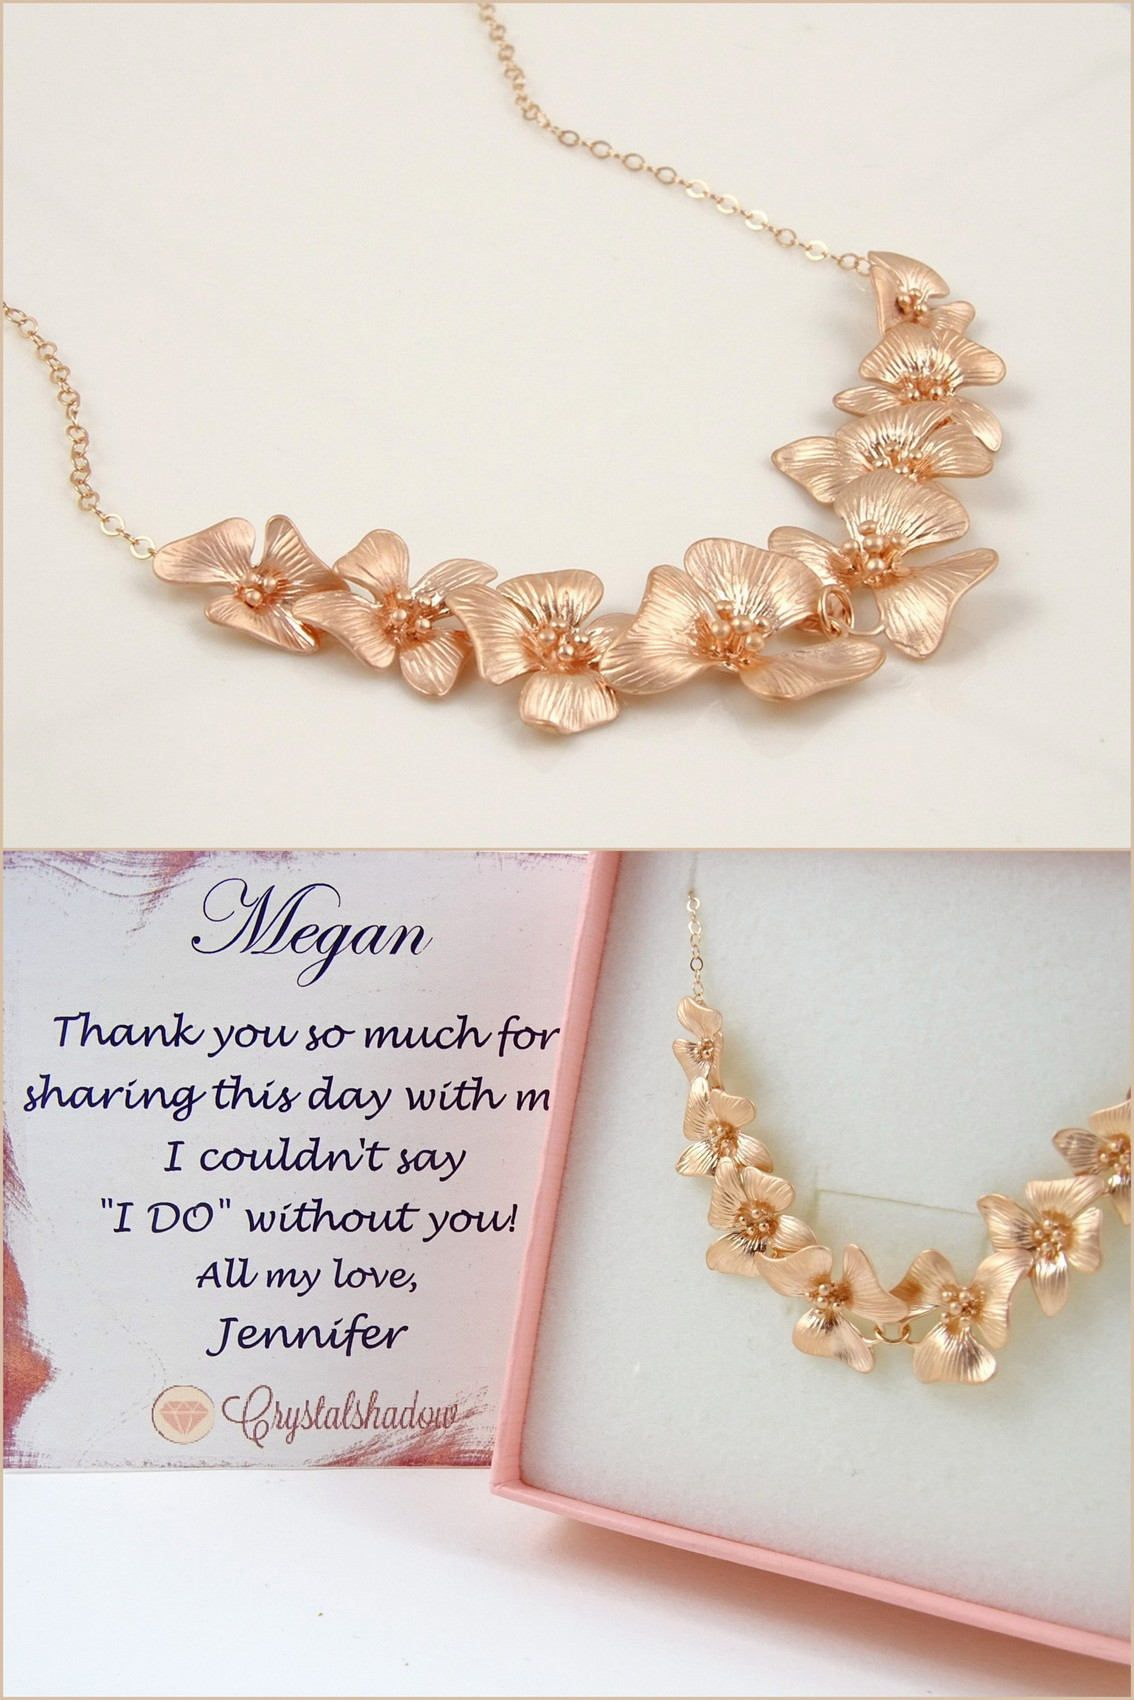 Rose Gold Statement Necklace For Bridesmaid Thank You Gift Wedding Party Ideas Bride 21st Birthday Girlfriend